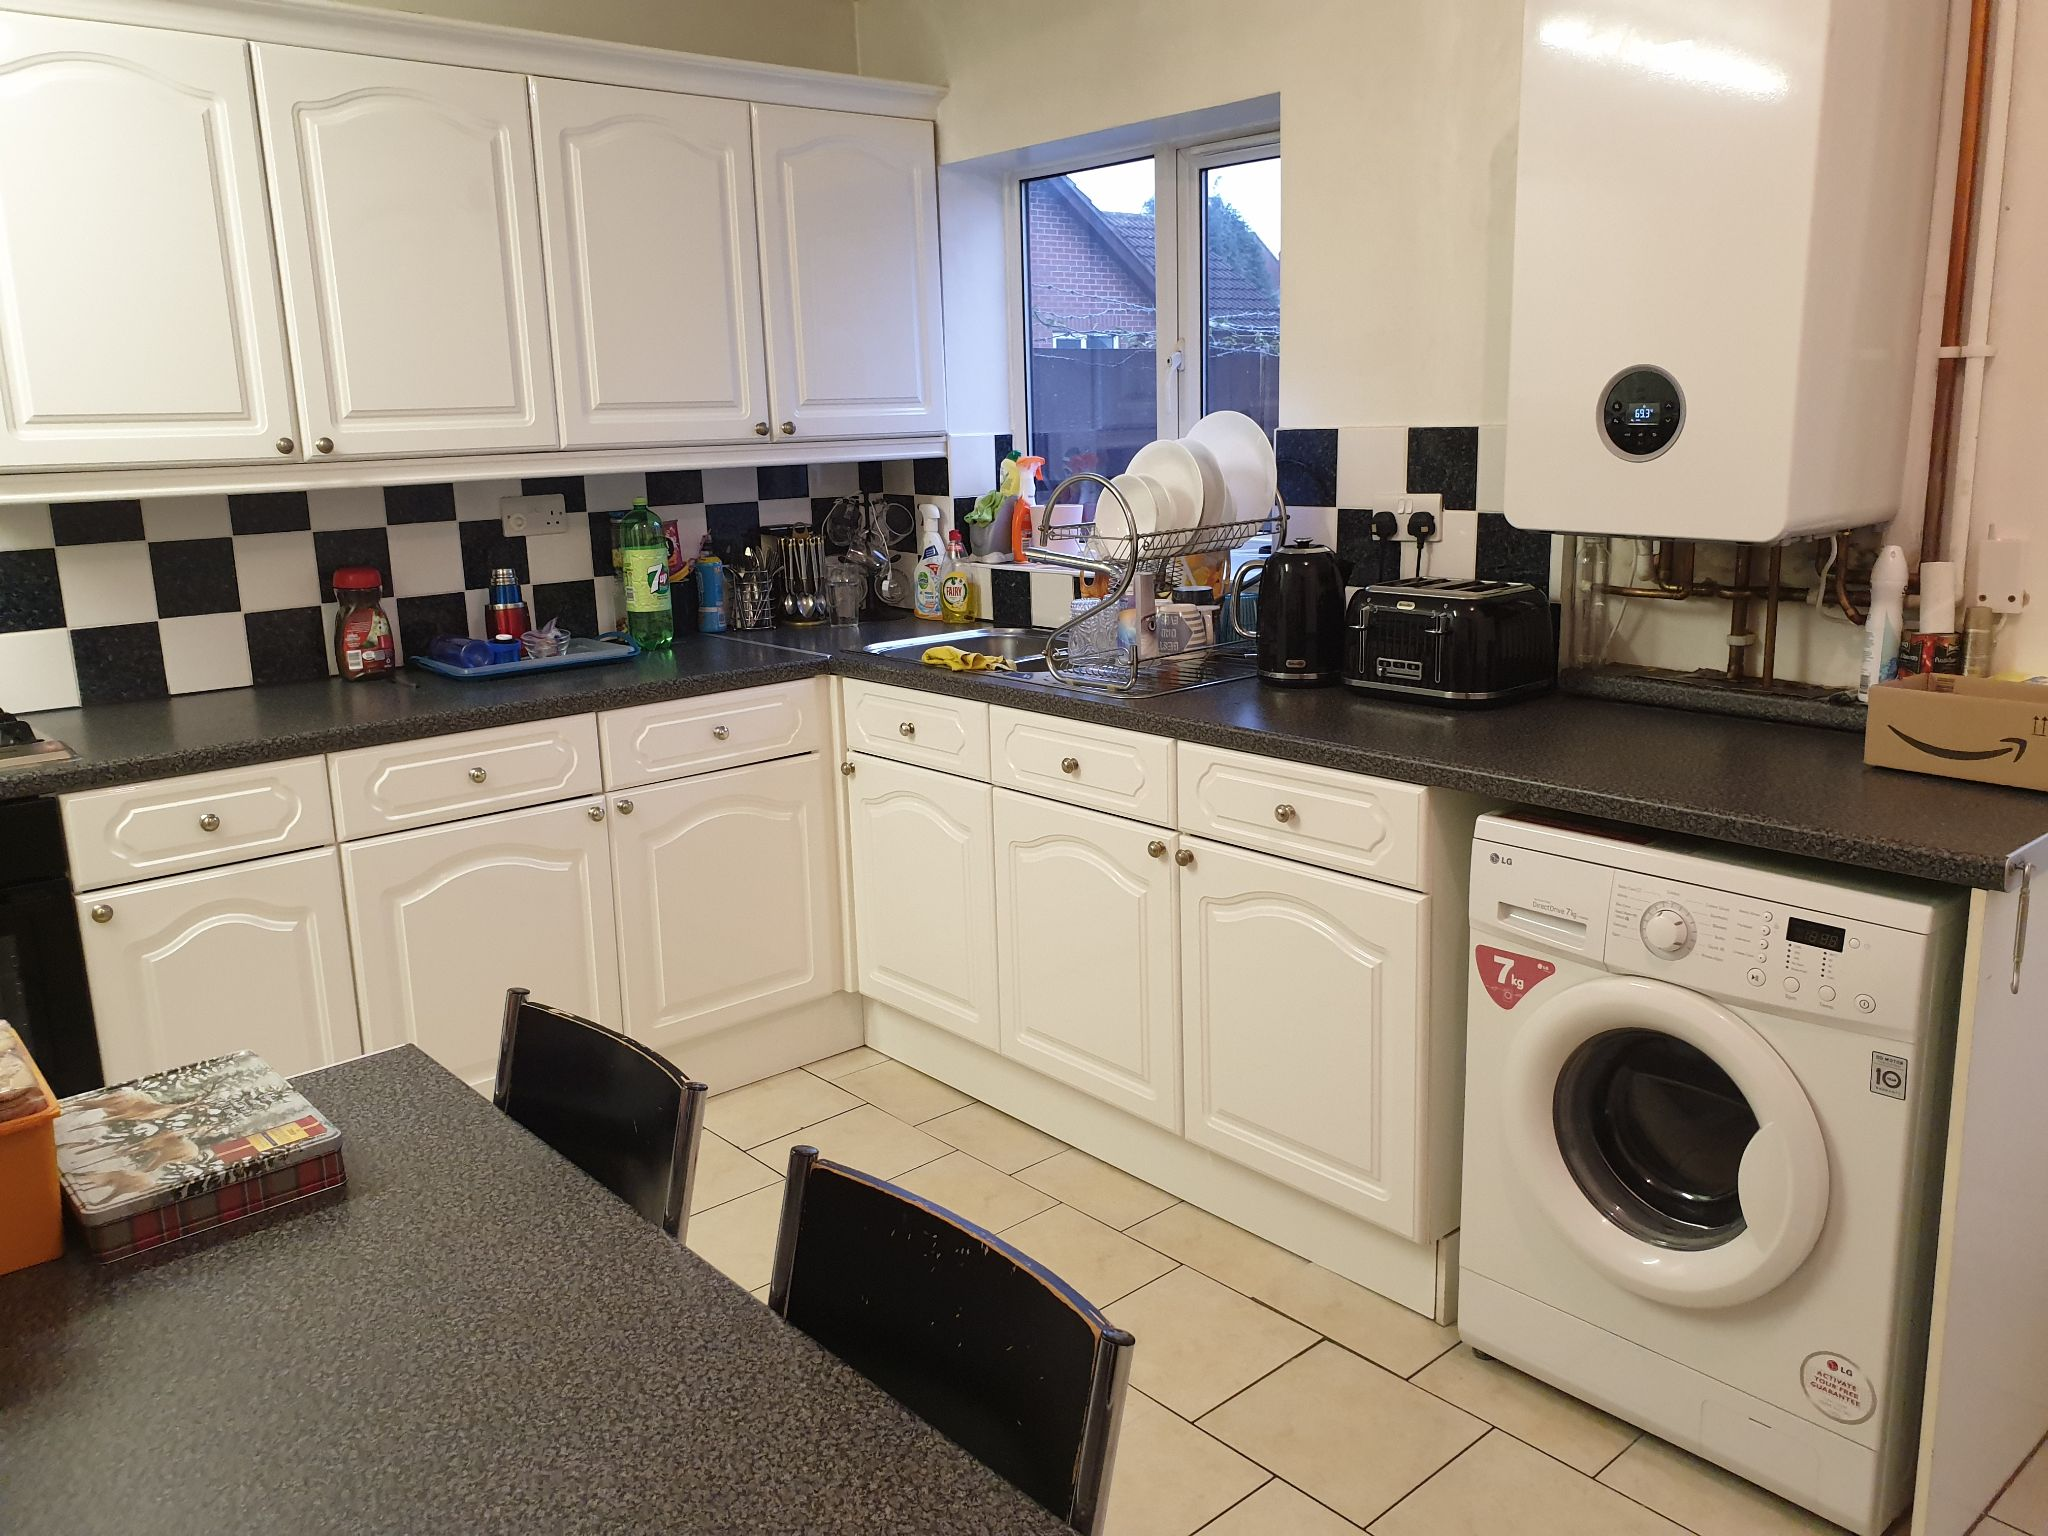 3 Bedroom Semi-detached House For Sale 35 Marston Road Image 4